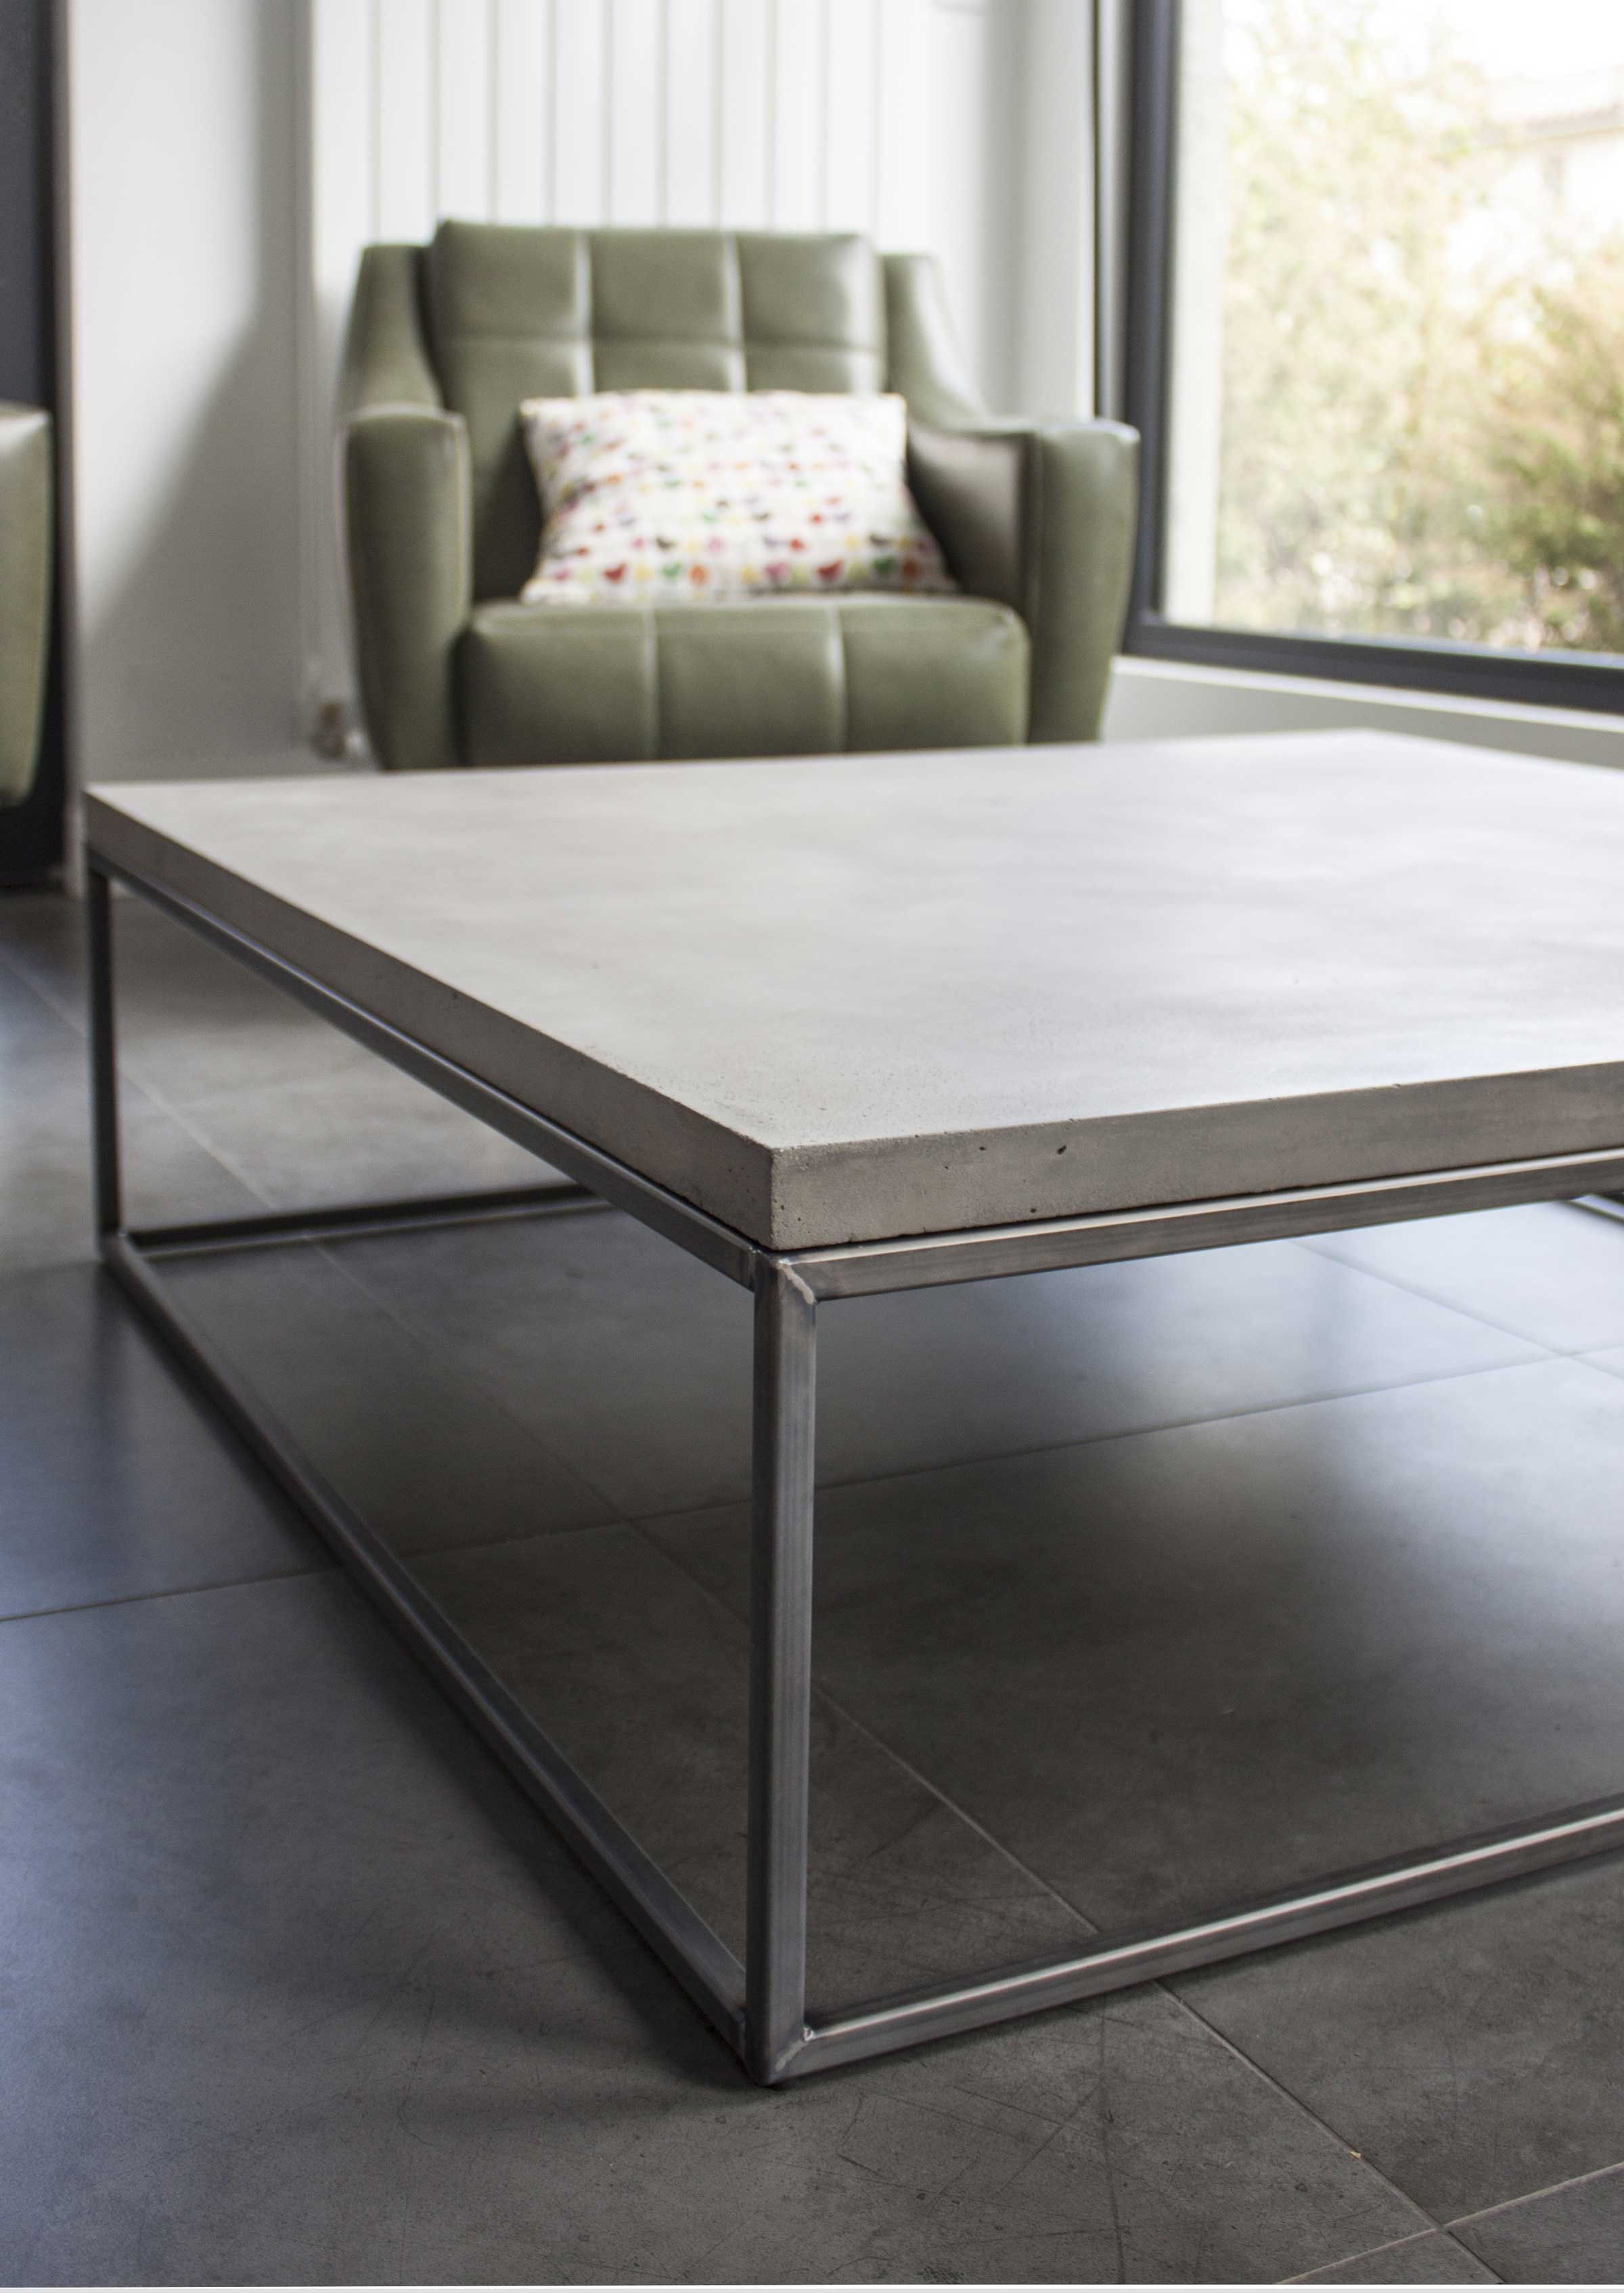 Our Concrete Perspective Coffee Table By Lyon Béton Has Simple Lines Clean Geometric Shapes And A Fuss Less Material